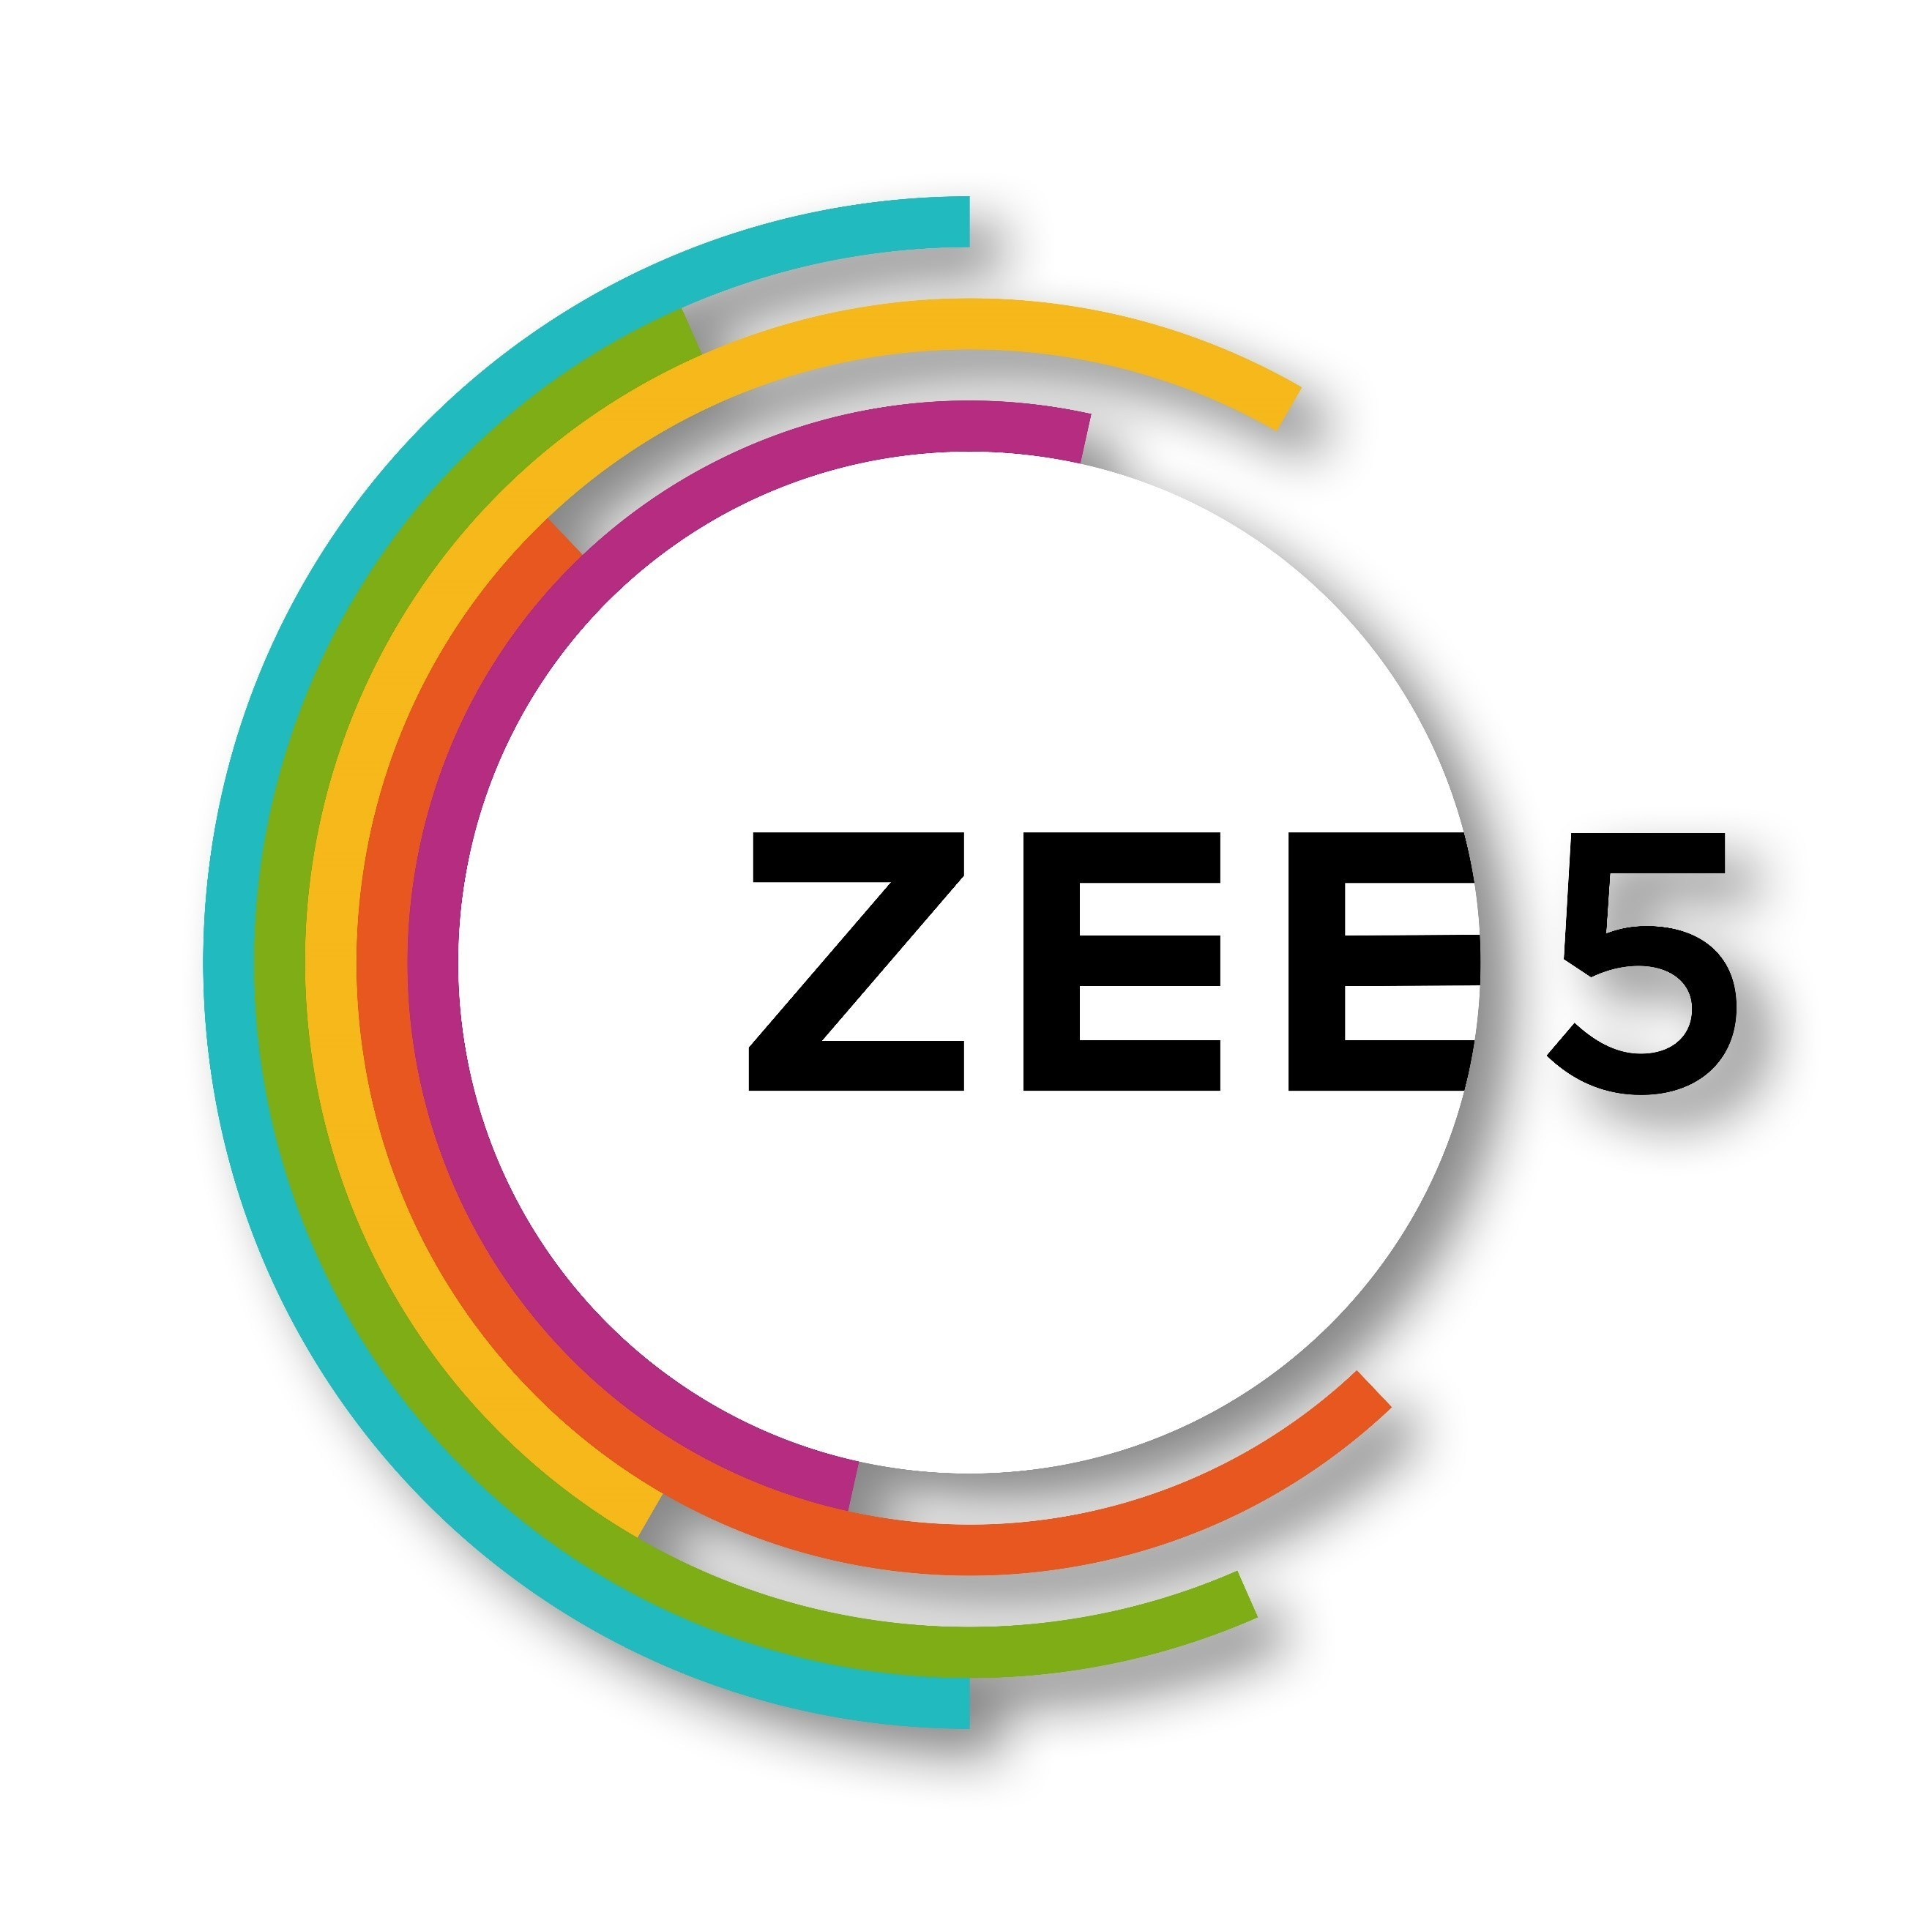 ZEE5 Sponsors Iconic Singer Asha Bhosle's Global Farewell Tour and